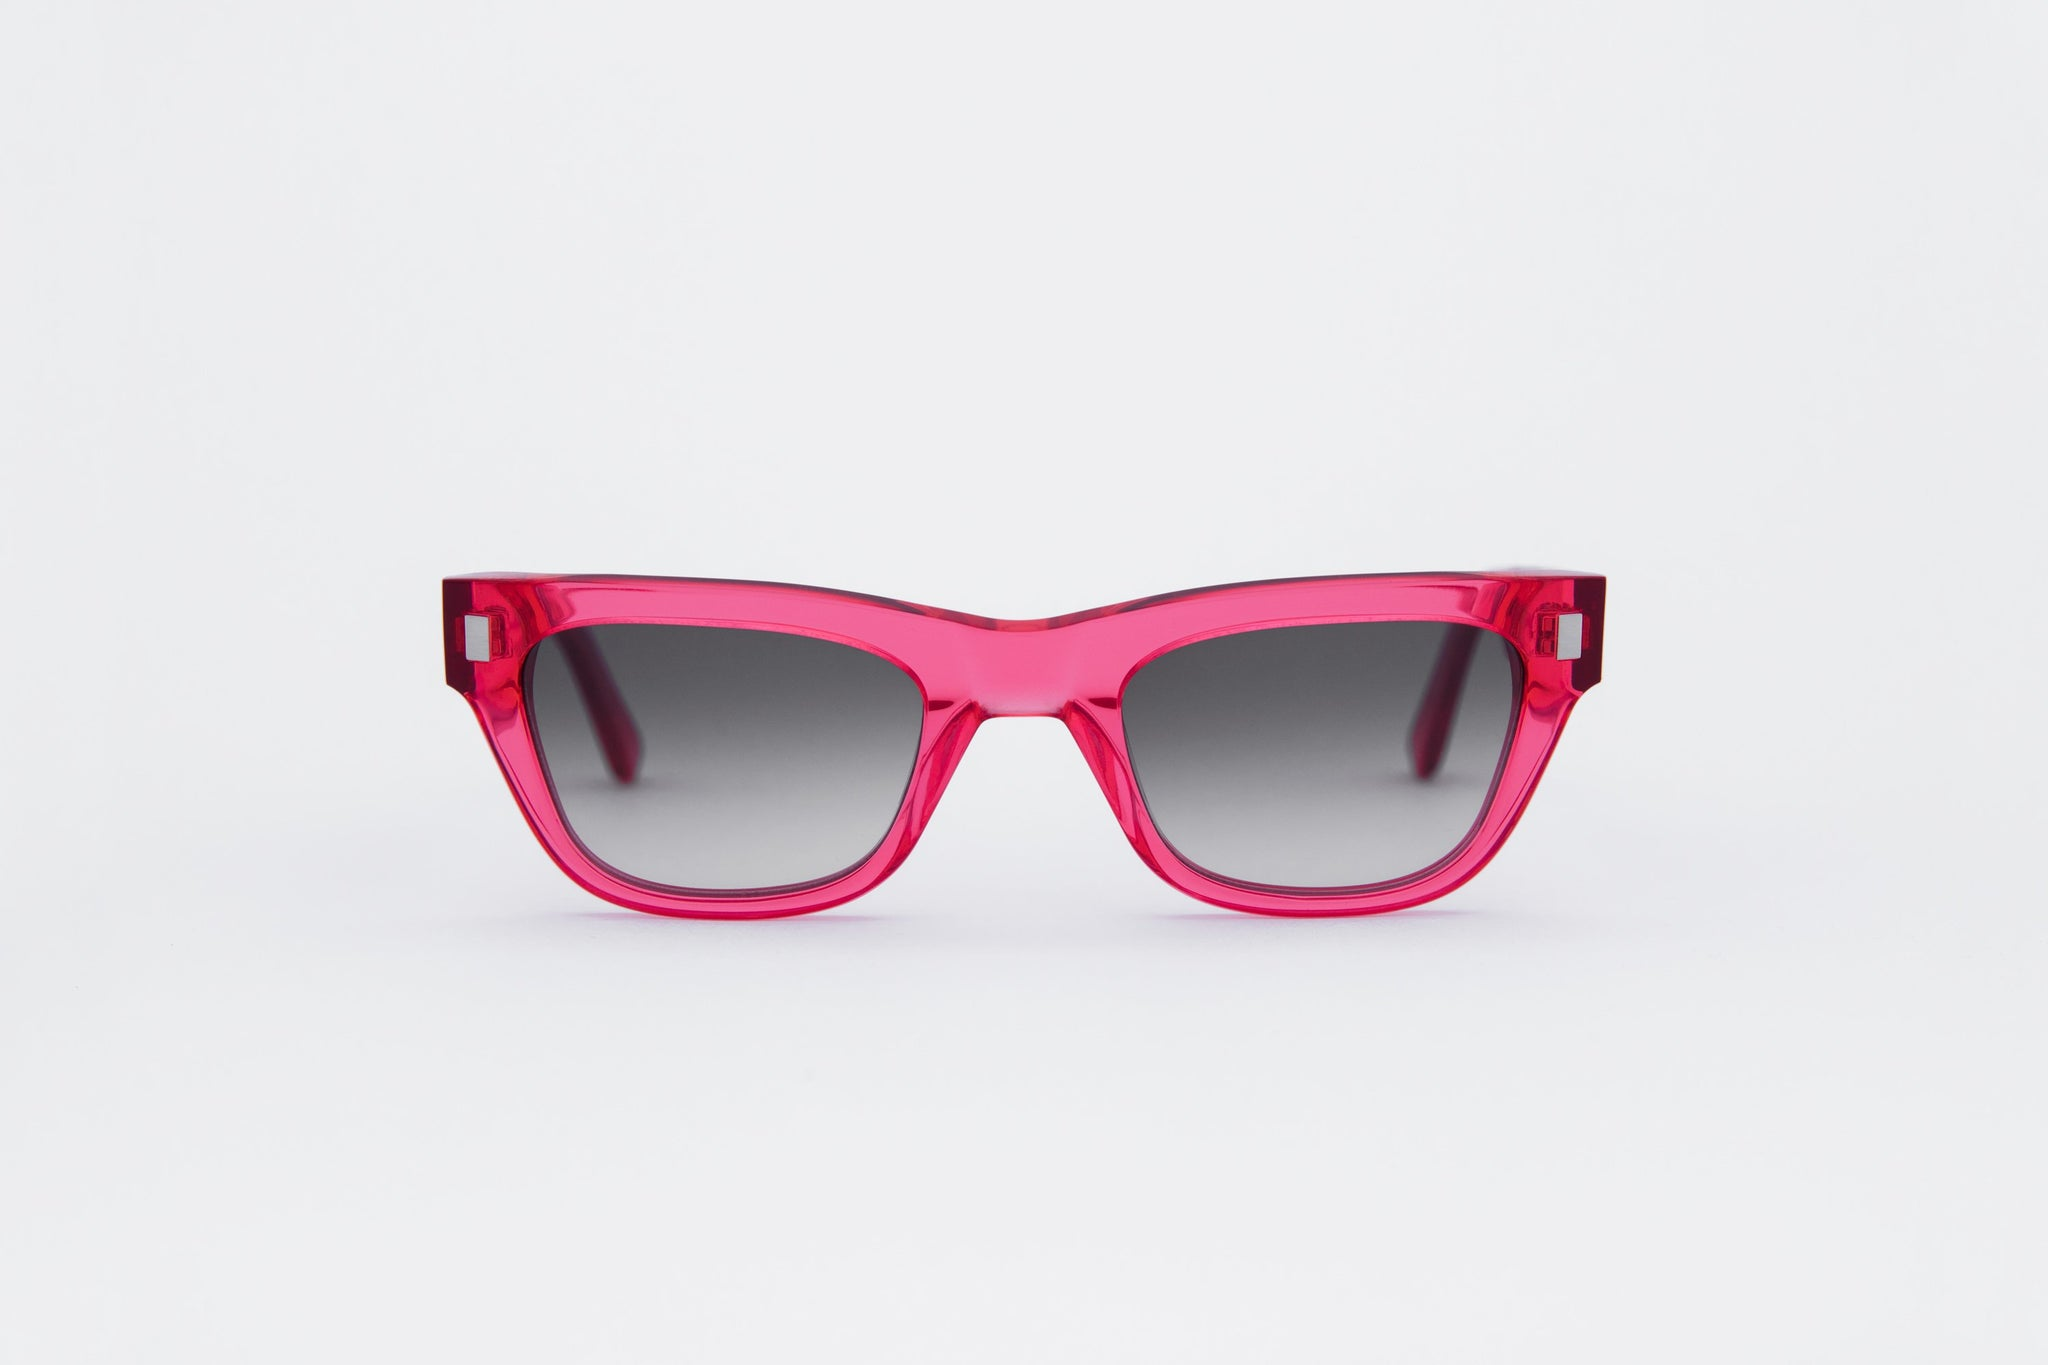 monokel eyewear sunglasses aki clear red